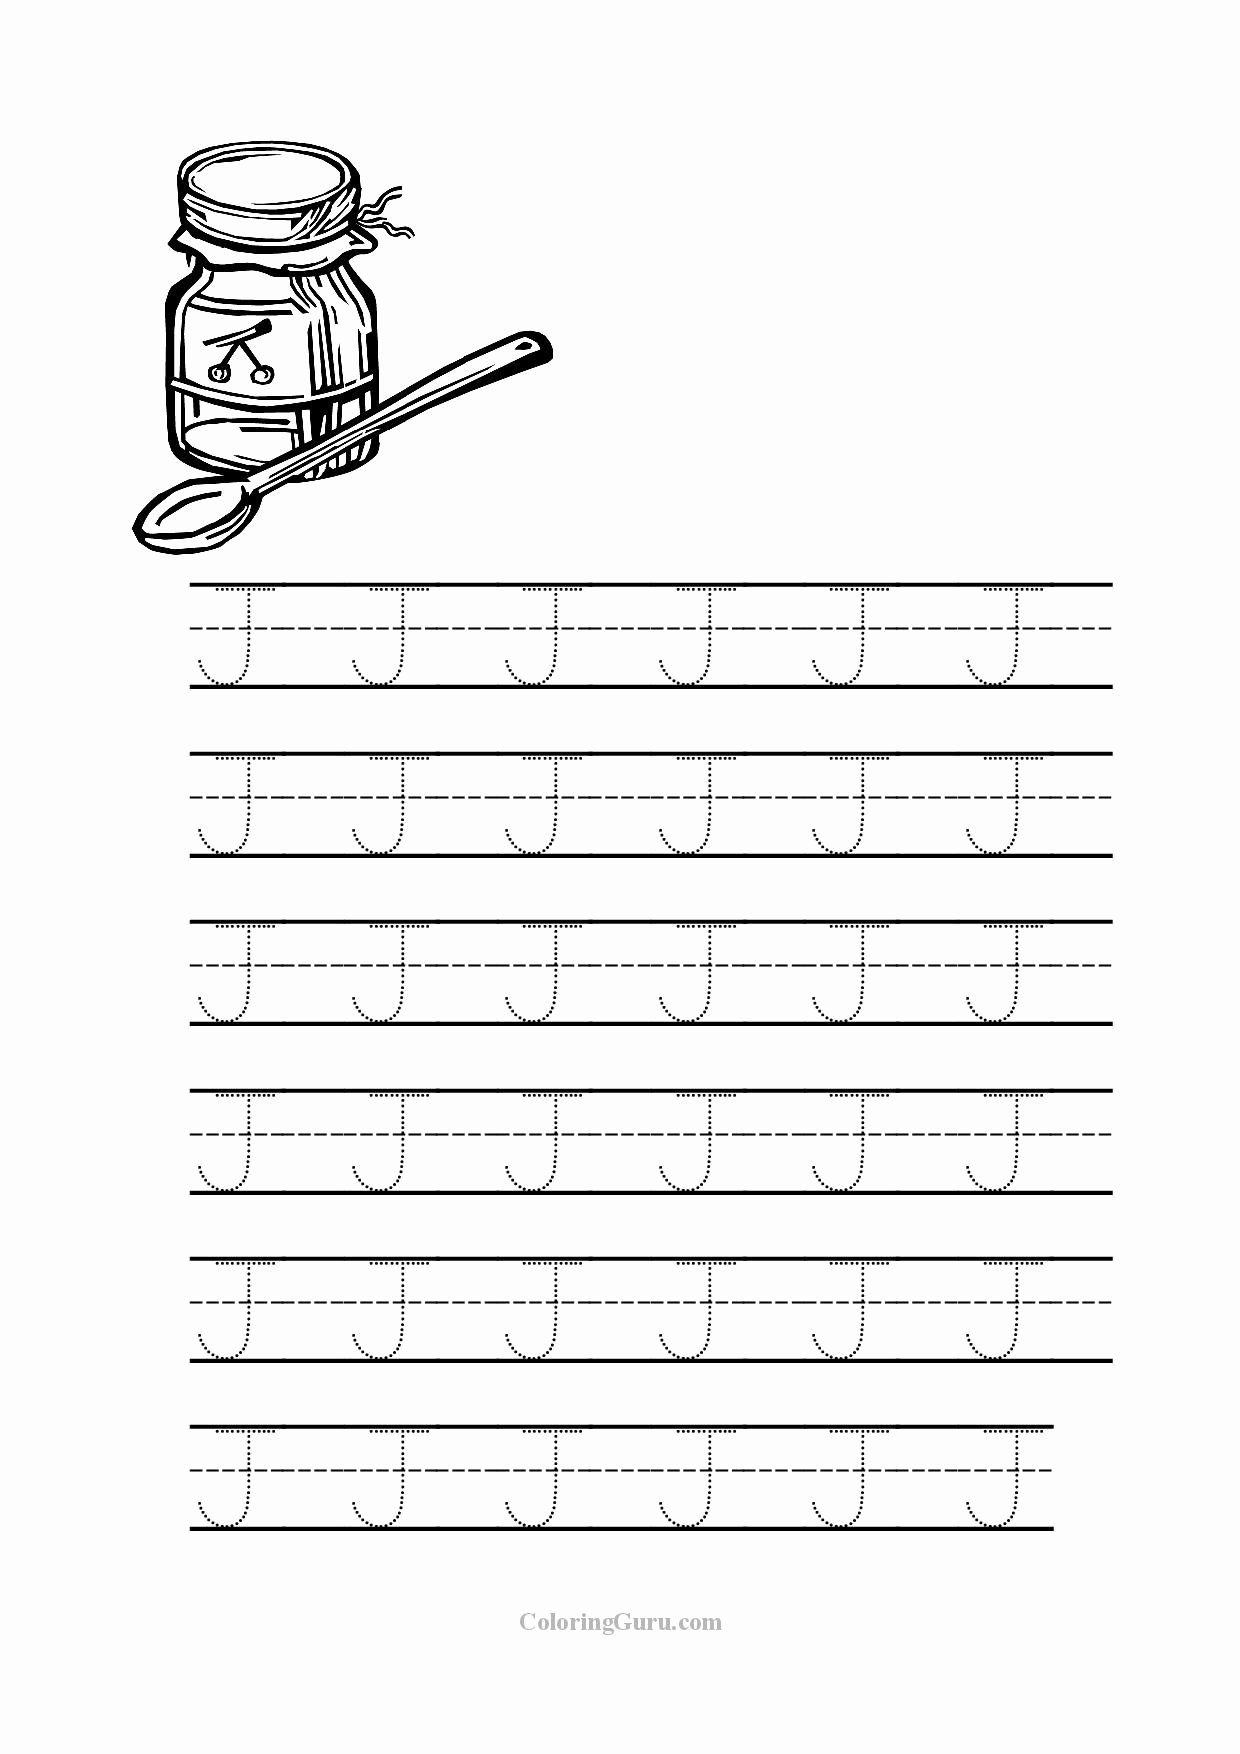 Letter J Worksheets for Preschool Fresh Free Printable Tracing Letter J Worksheets for Preschool